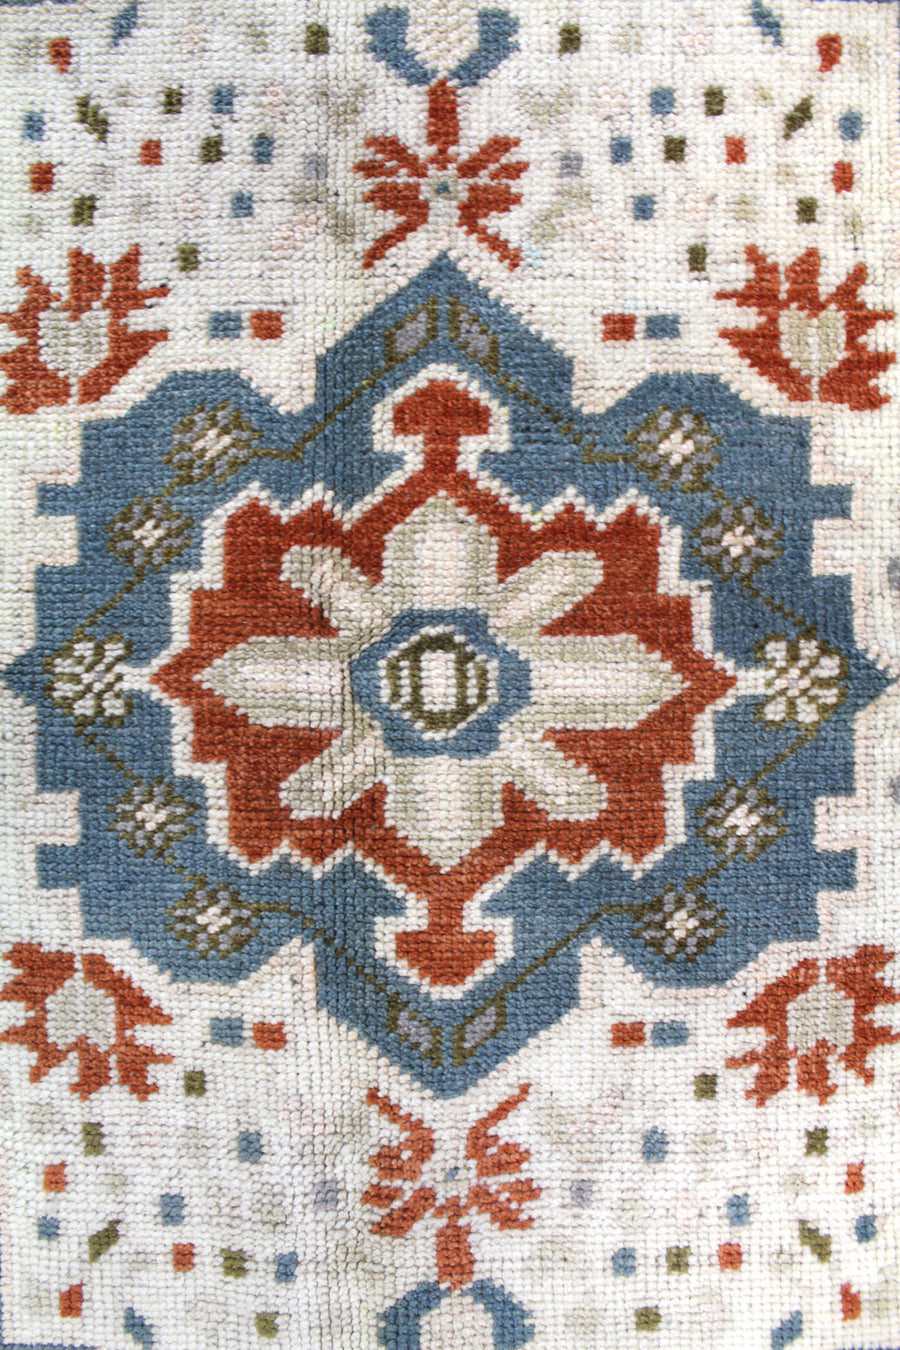 TASPINAR HANDKNOTTED RUG, J58211